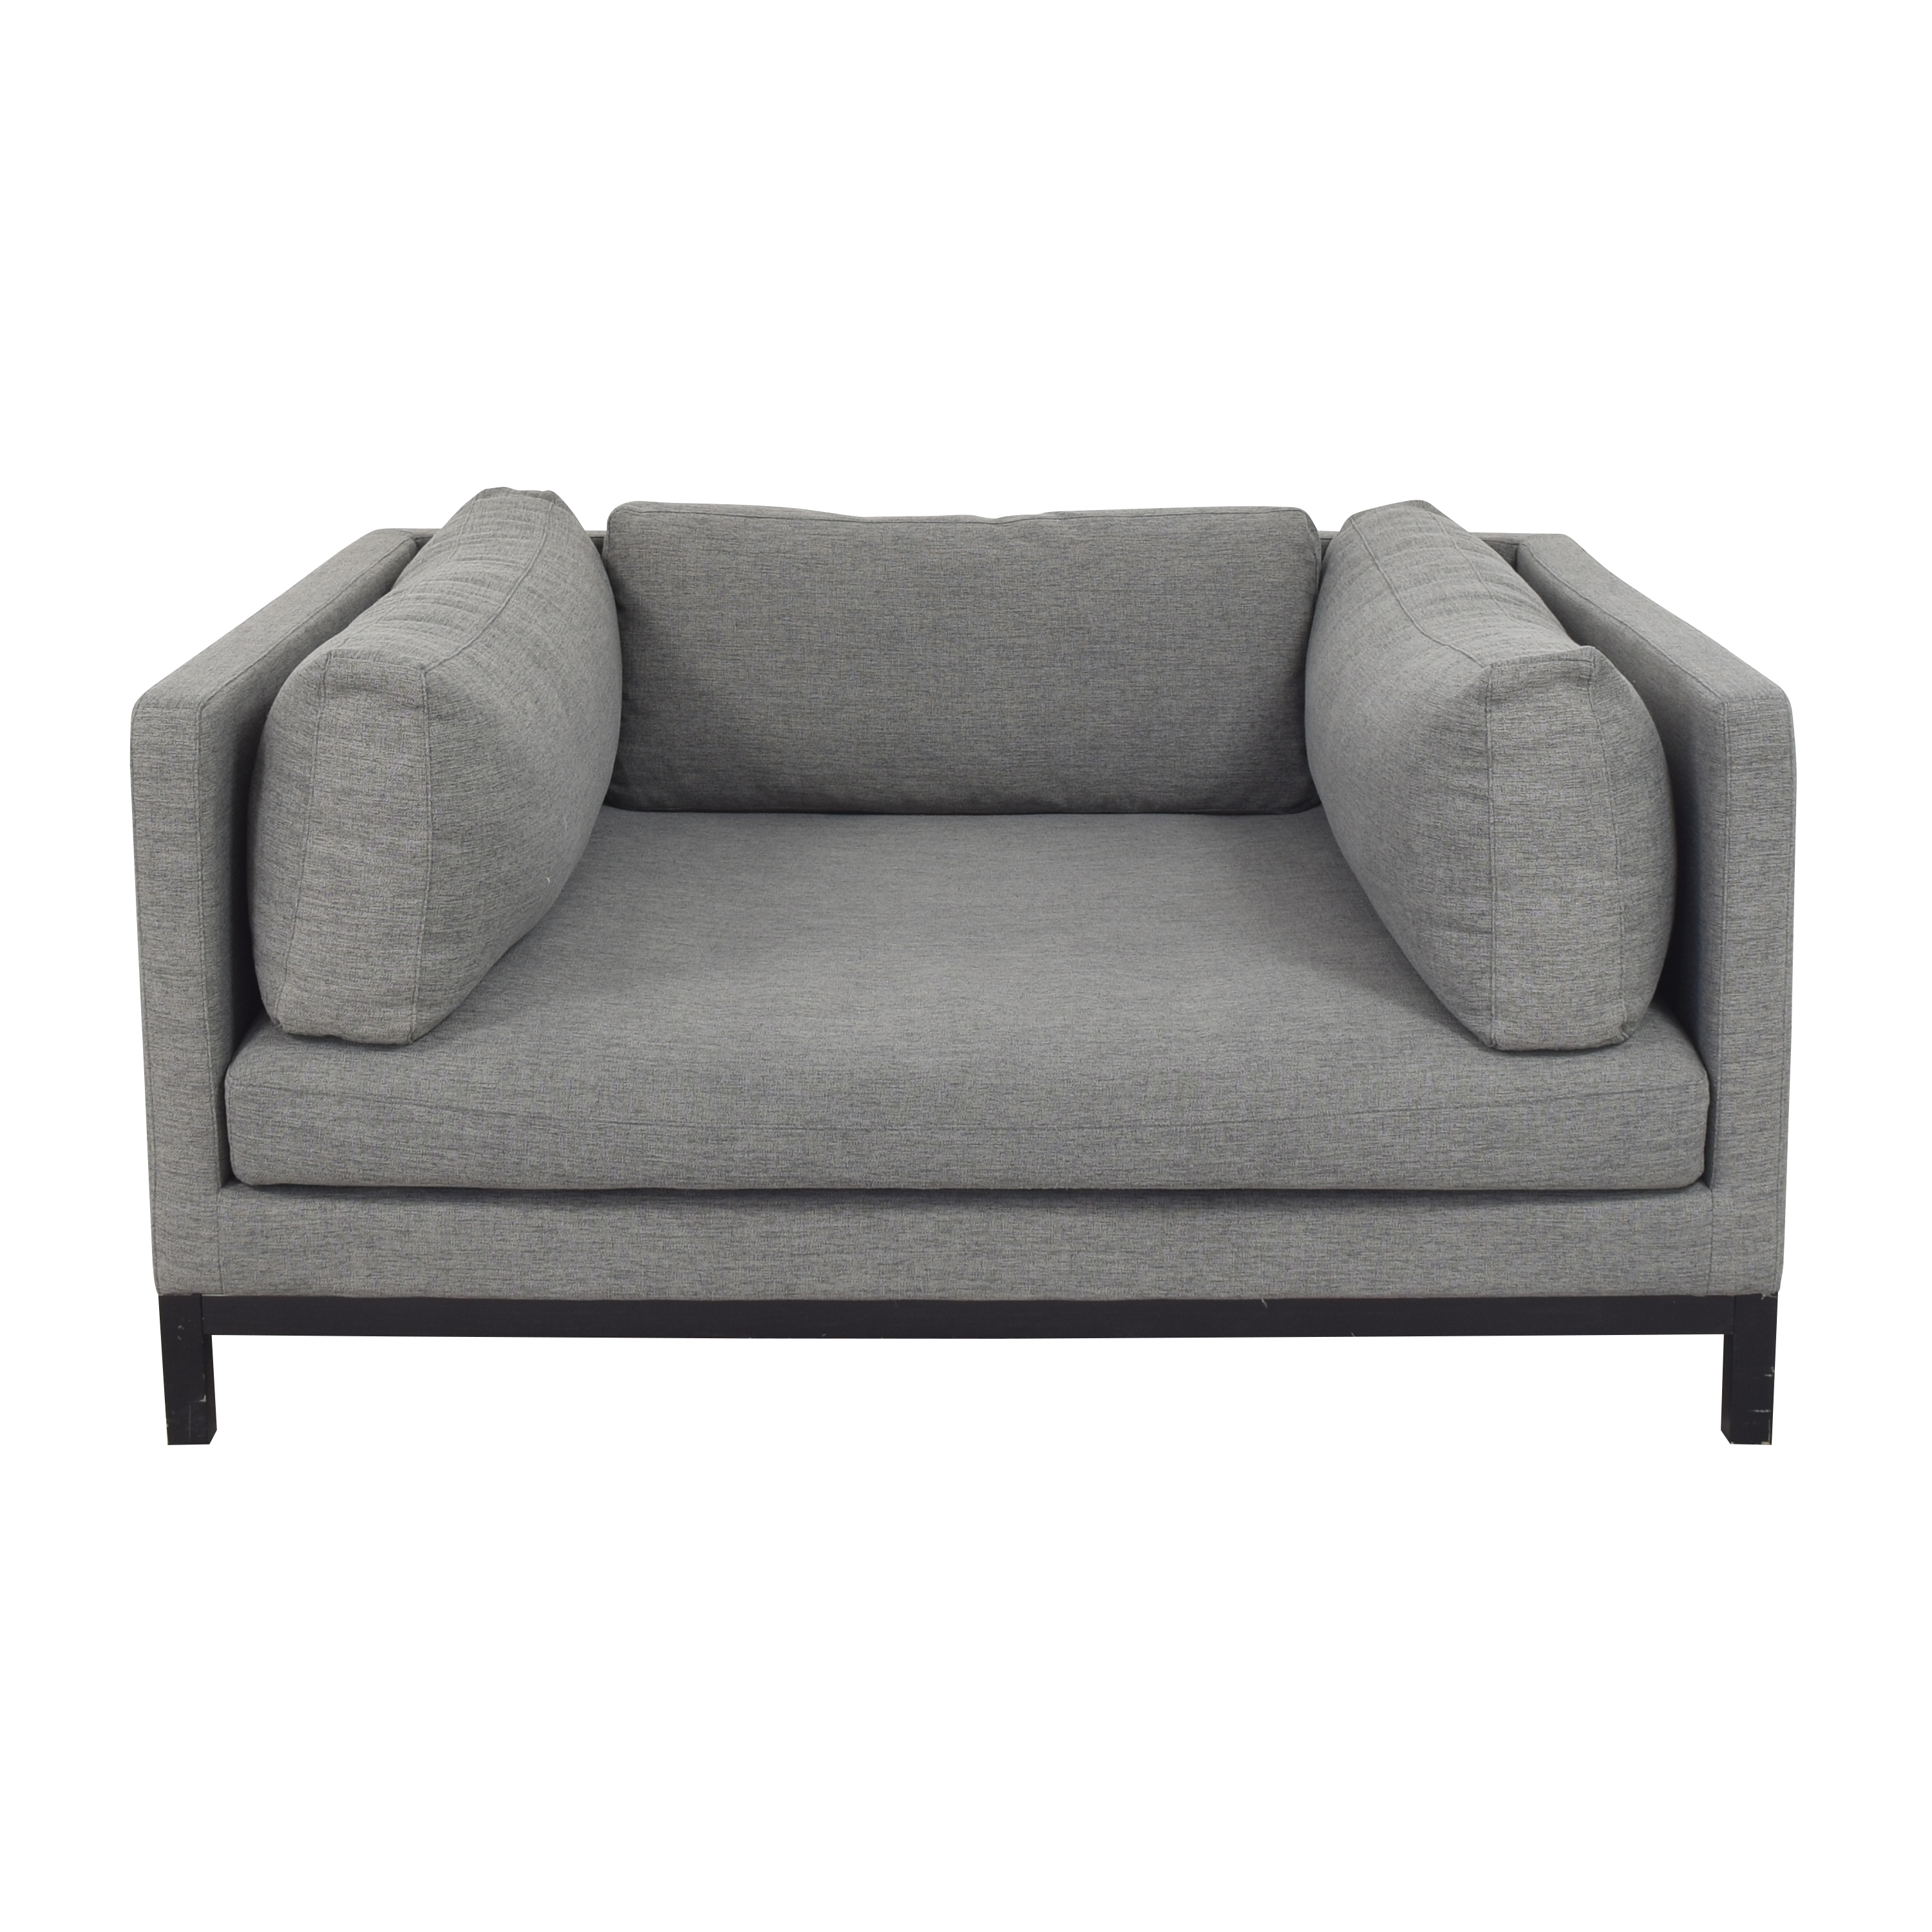 Interior Define Jasper Single-Cushion Sofa on sale